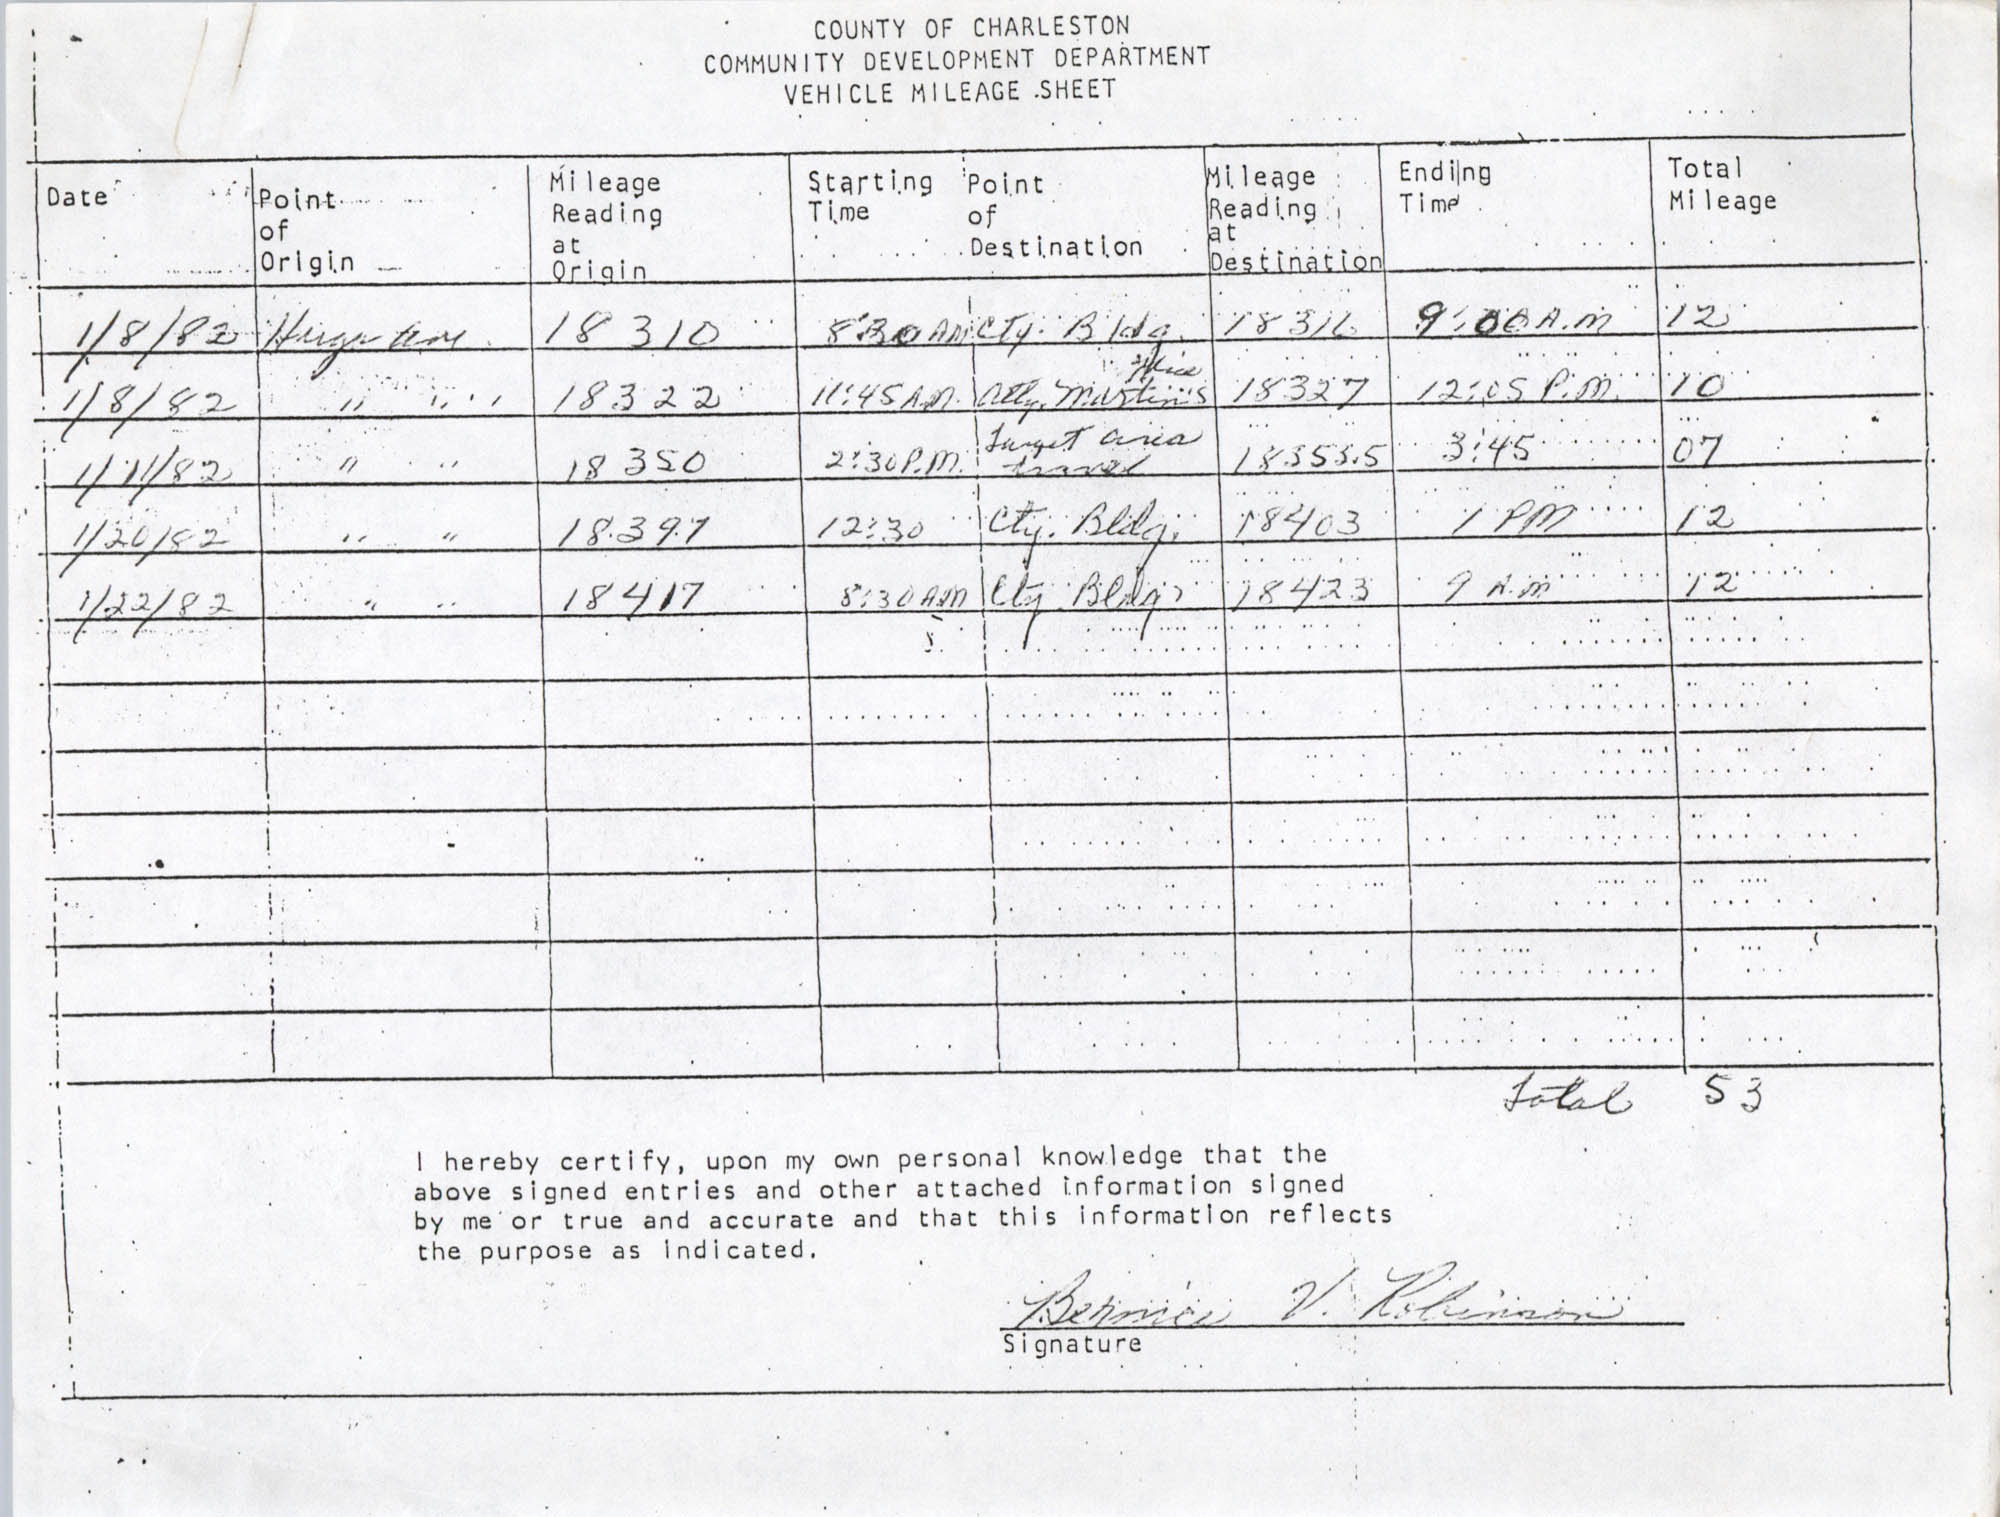 Community Development Department Vehicle Mileage Sheet, Page 8